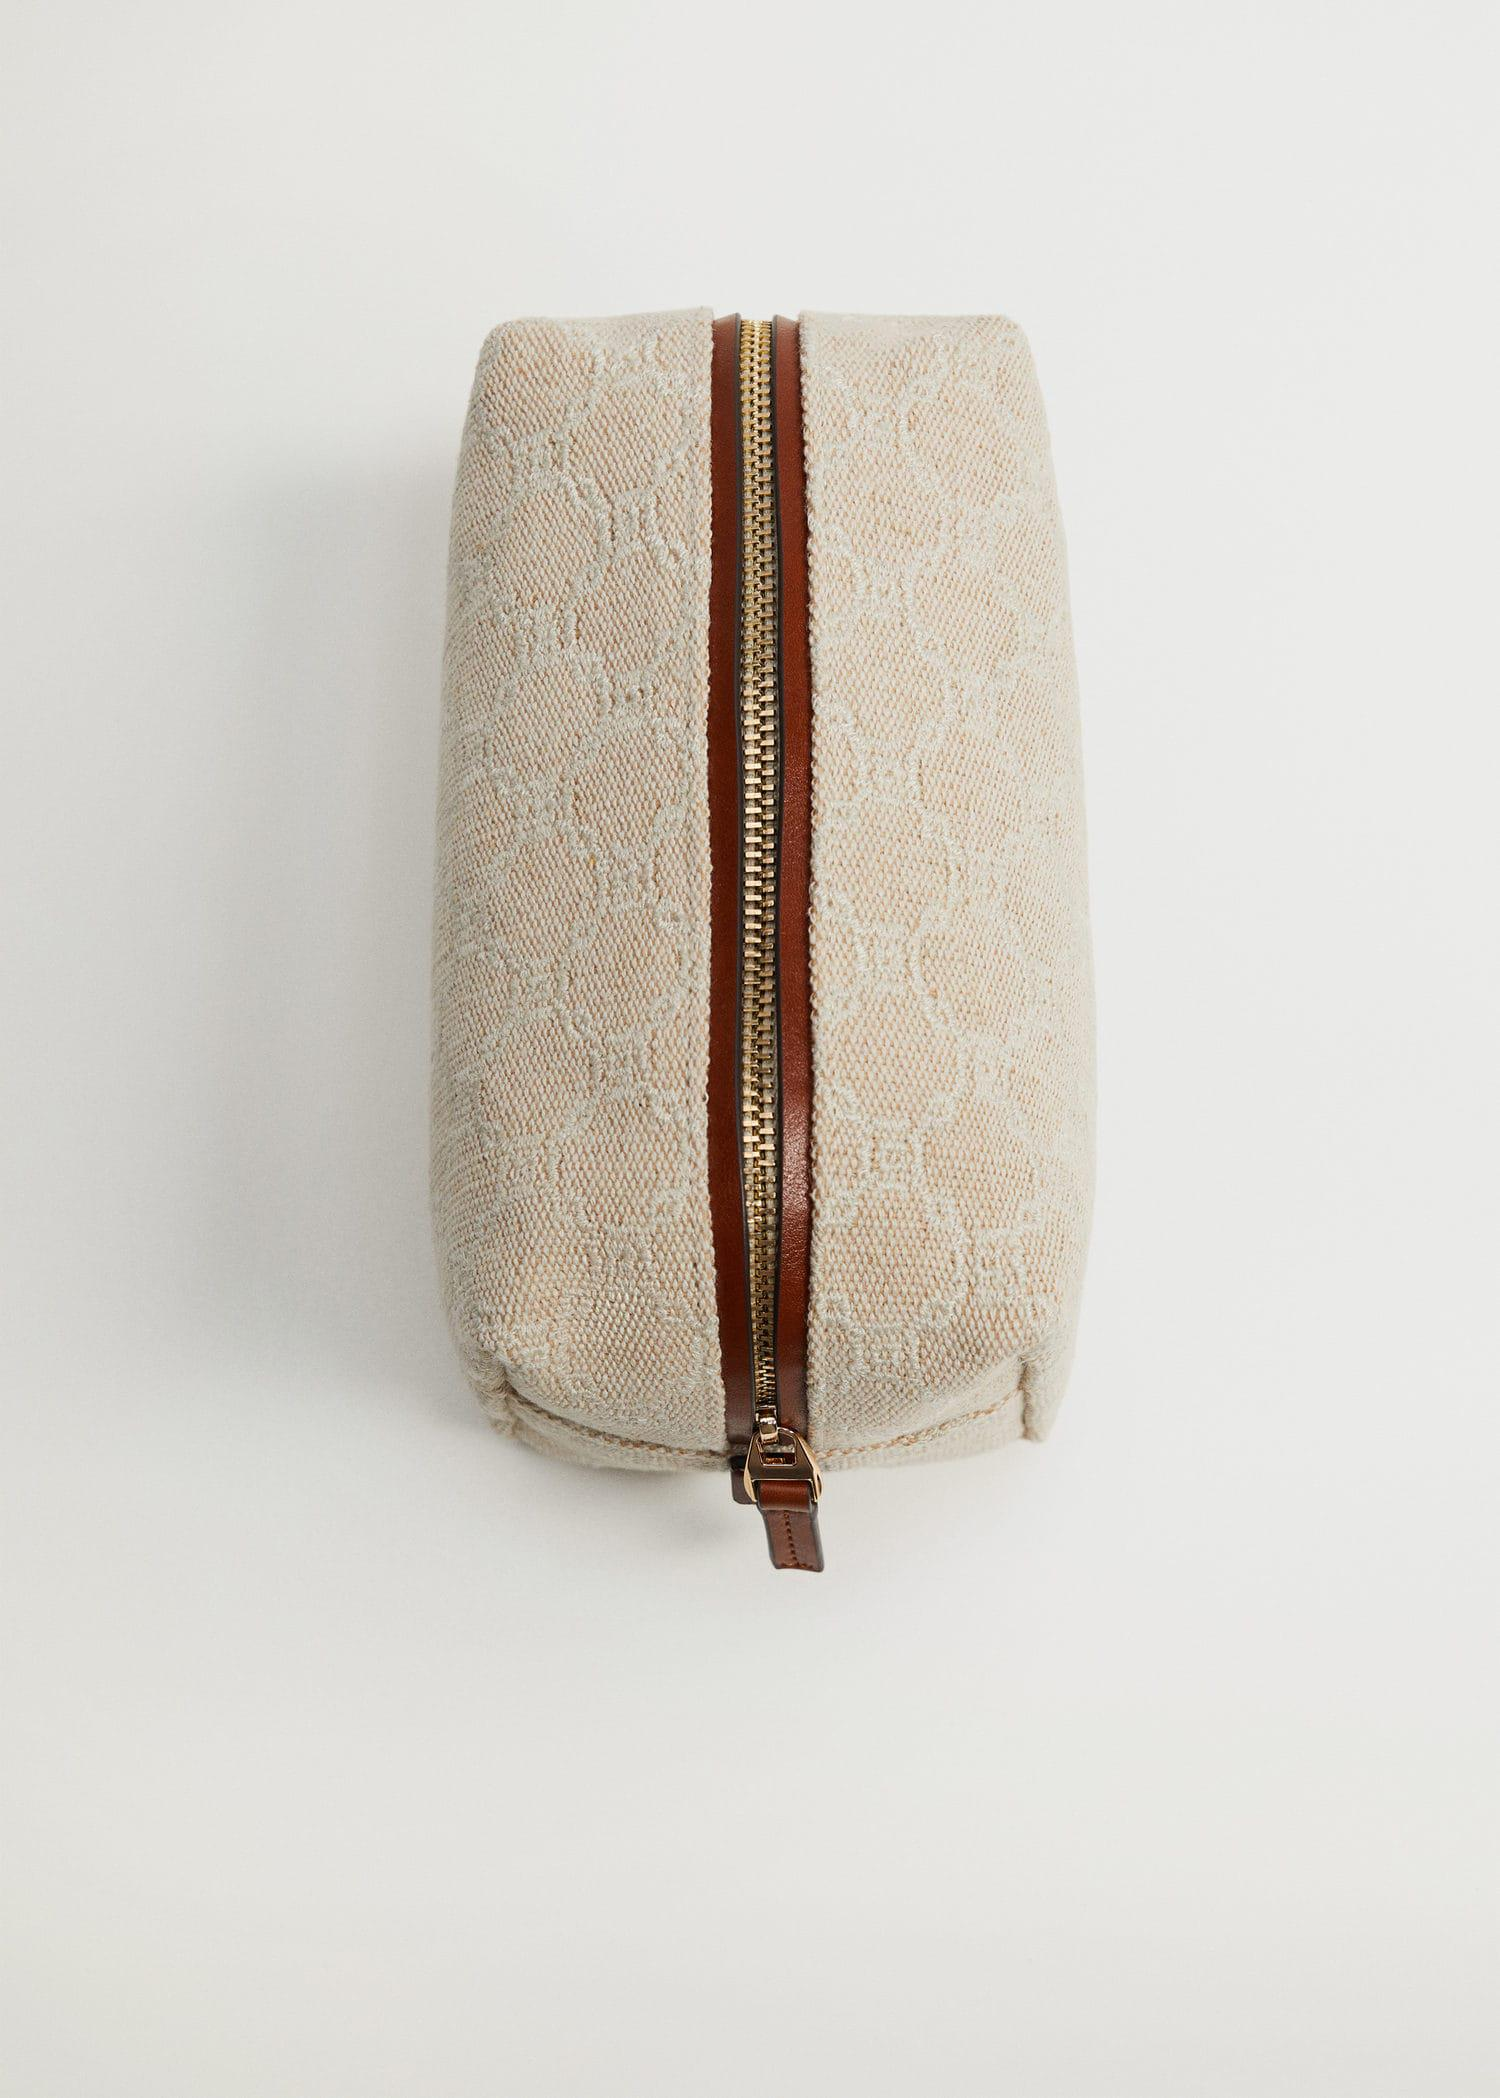 Embroidered jute cosmetic bag 1